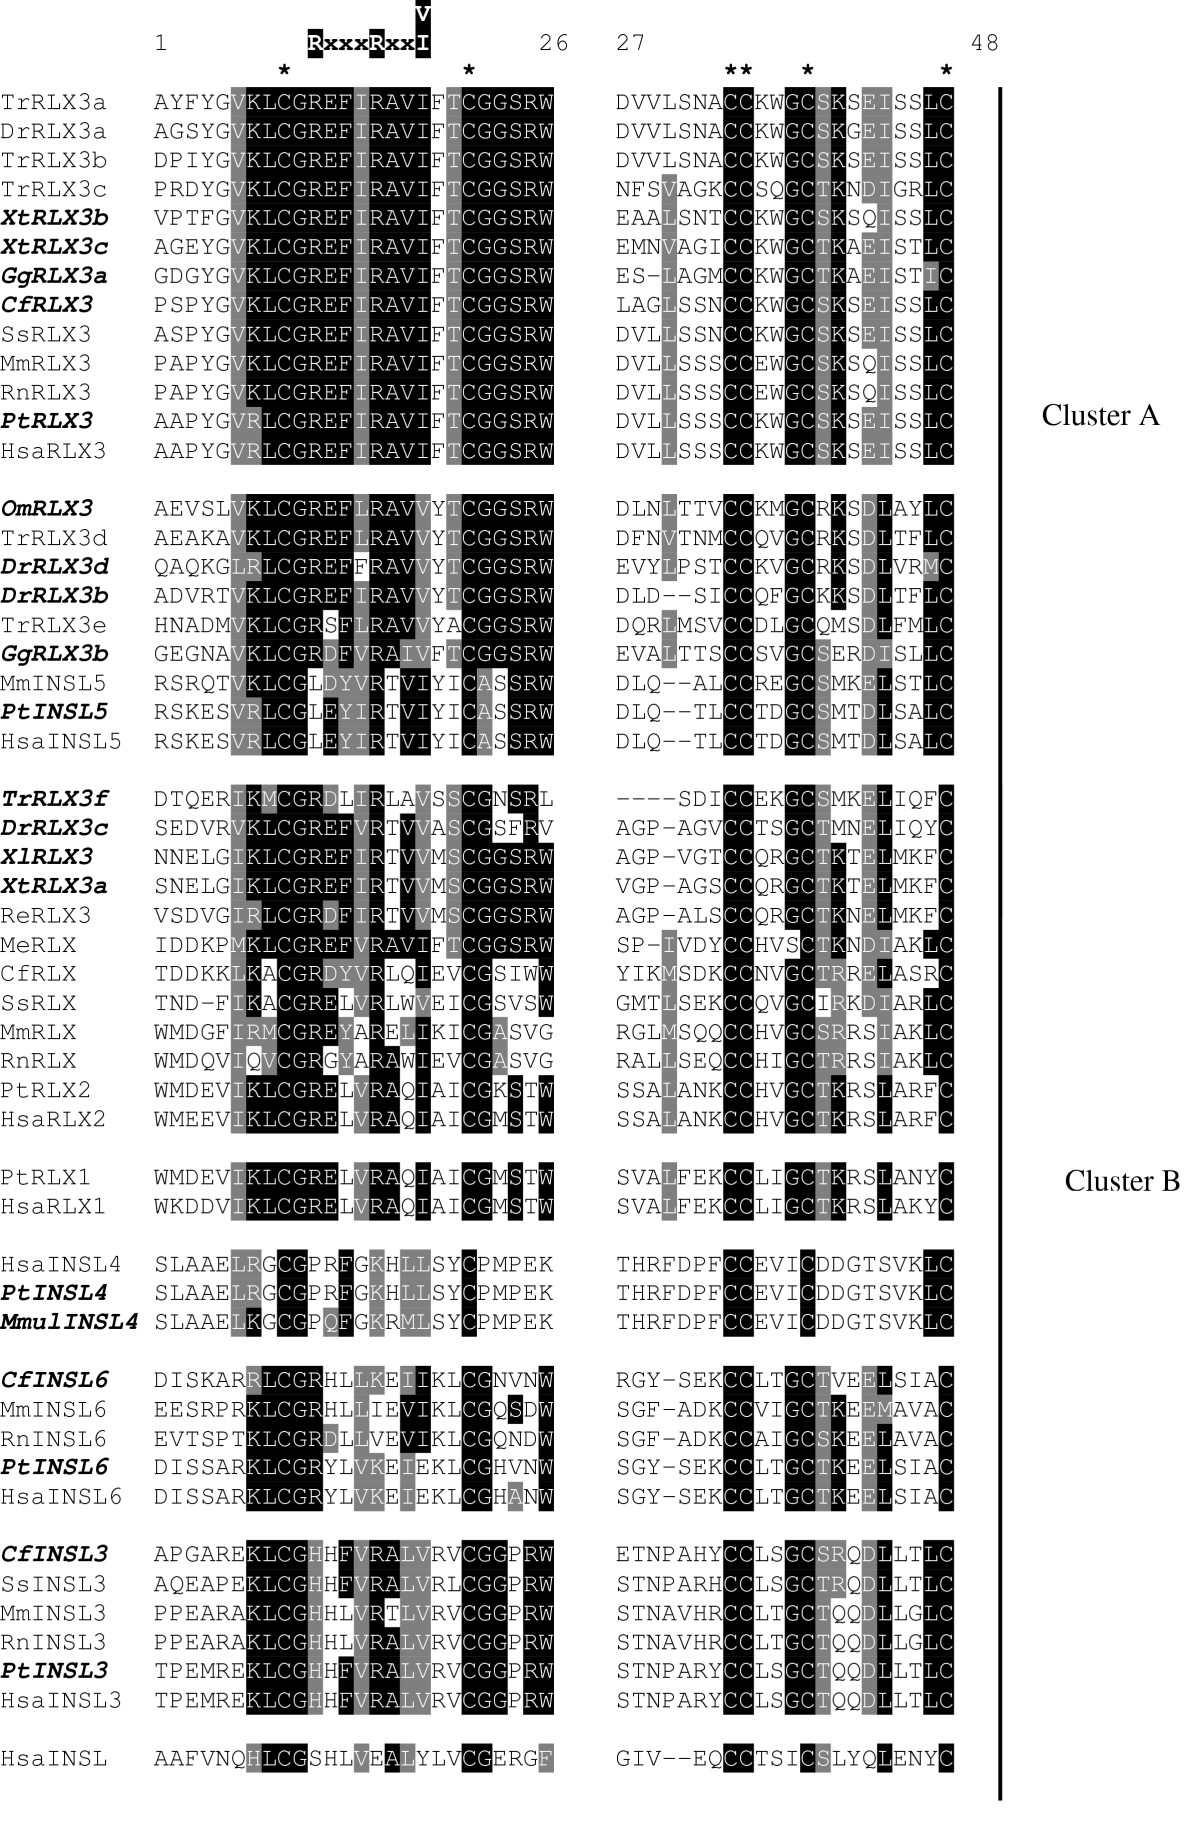 https://static-content.springer.com/image/art%3A10.1186%2F1471-2148-5-14/MediaObjects/12862_2004_Article_126_Fig1_HTML.jpg